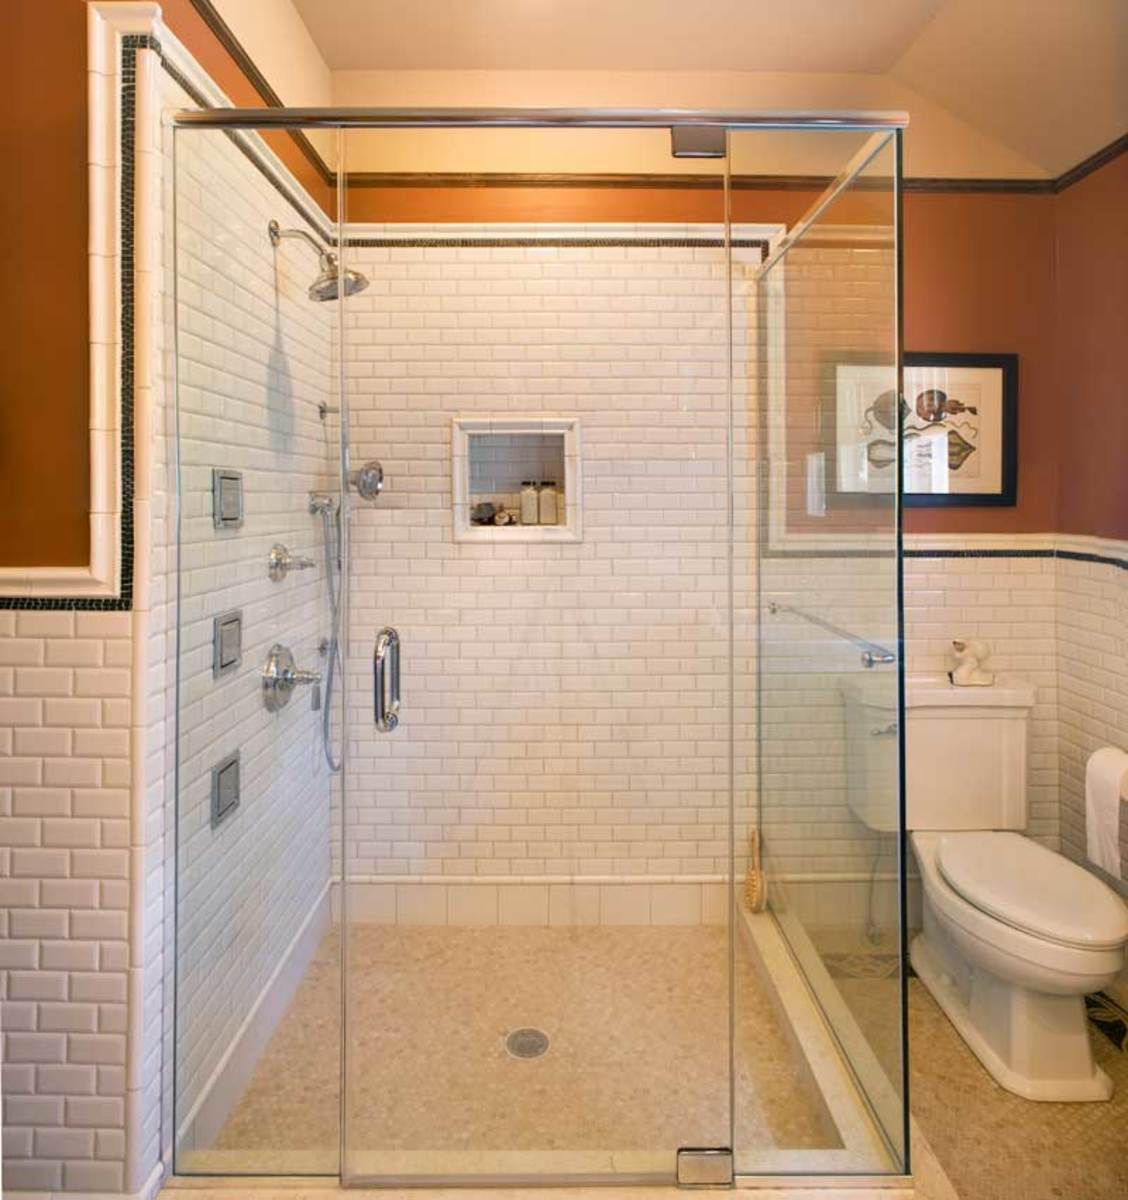 The shower is fully enclosed with glass panels, and has a custom niche for toiletries.